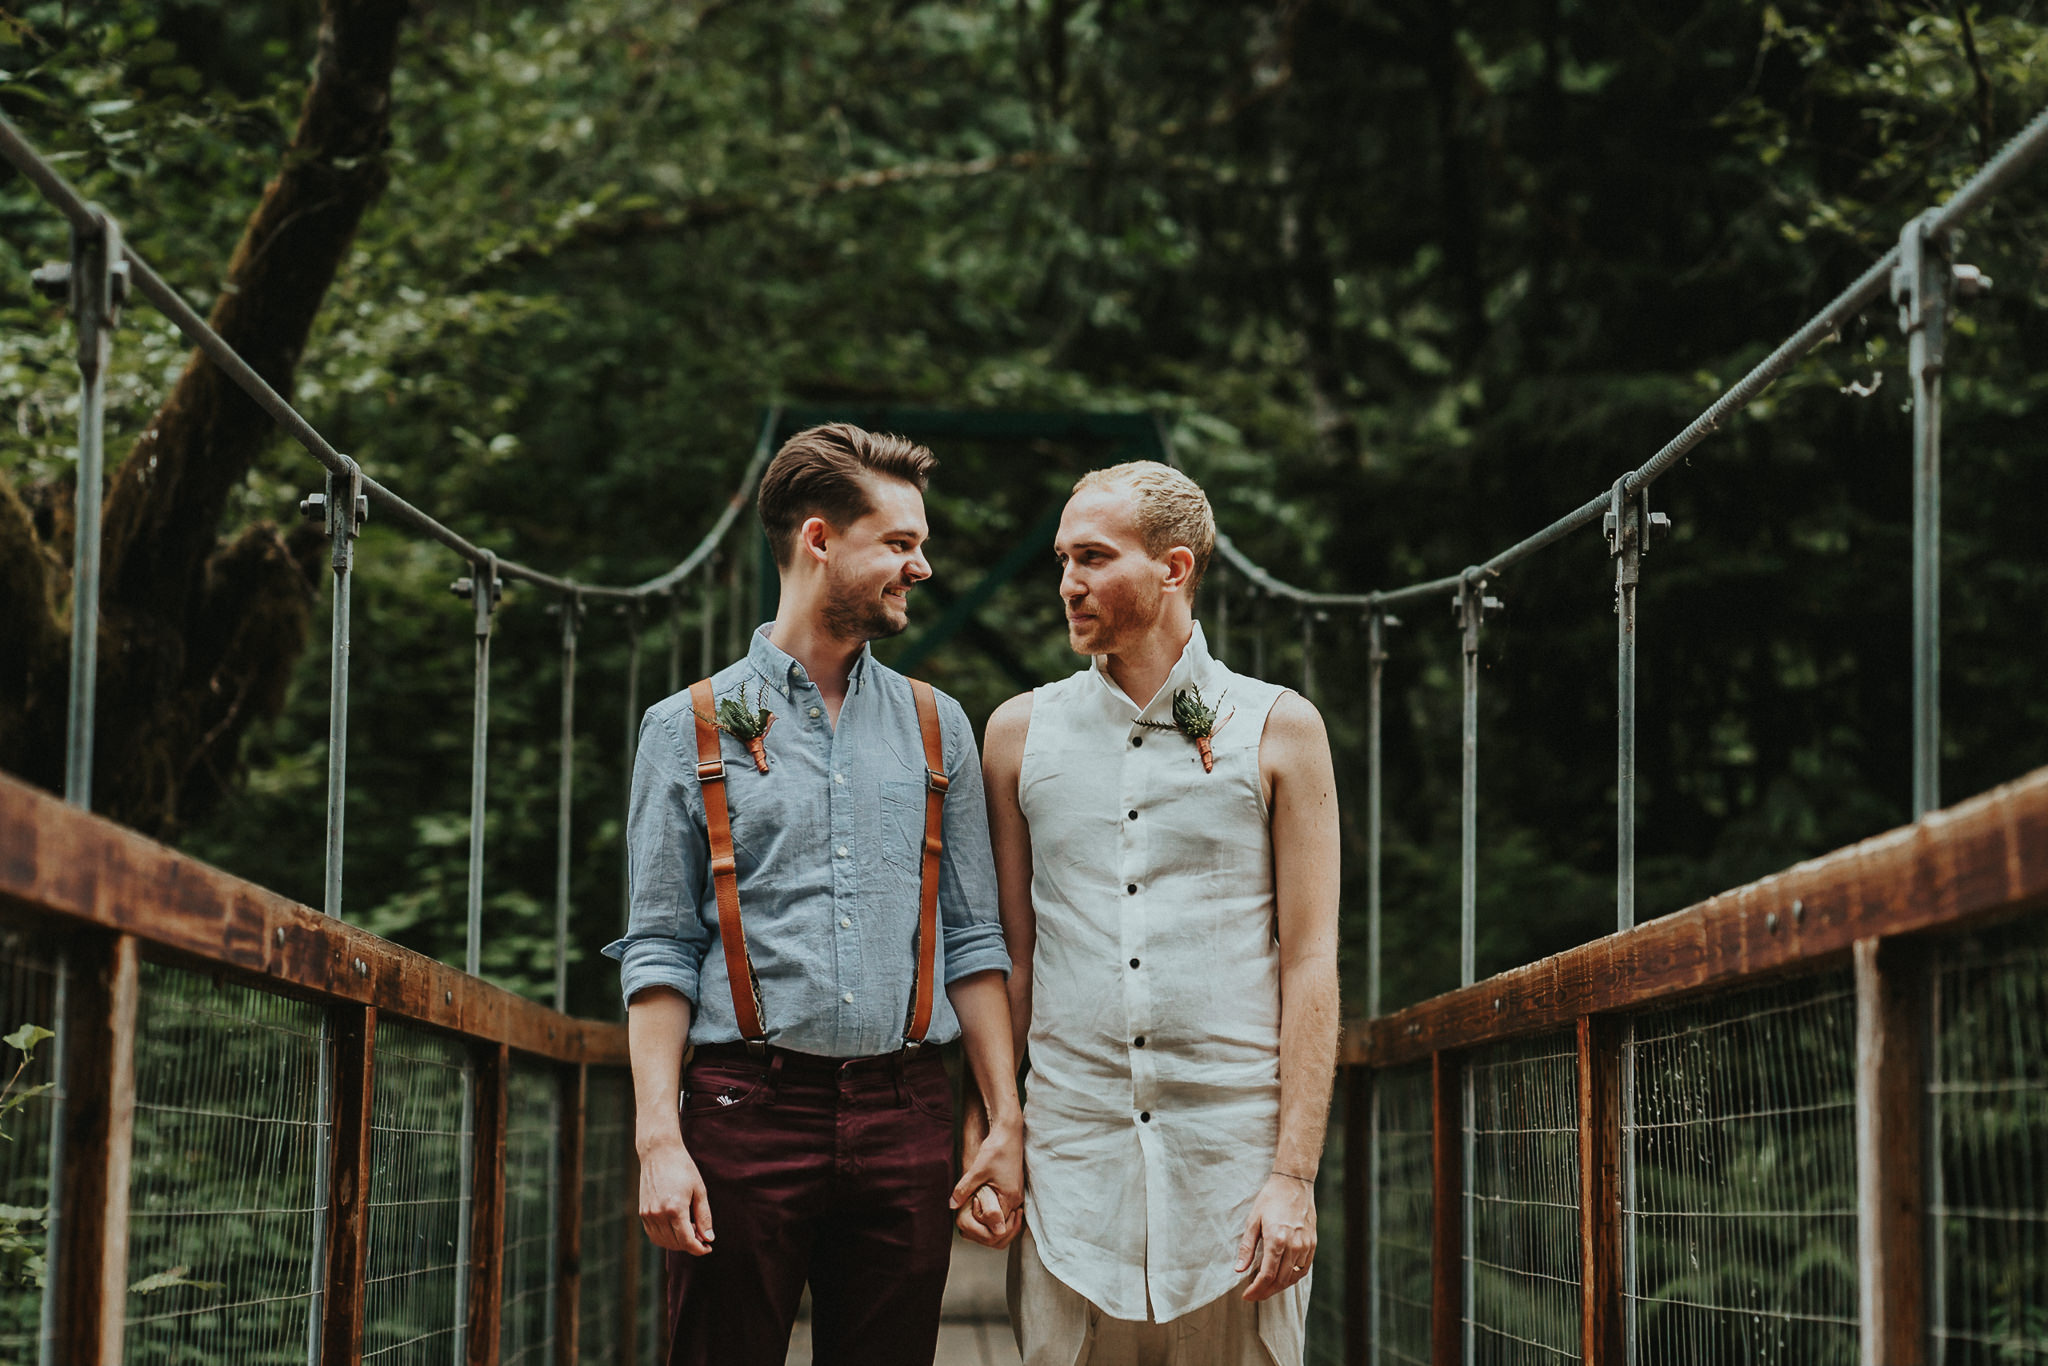 Oregon-Portland-same-sex-lgbqt-wedding-photographer-95.jpg